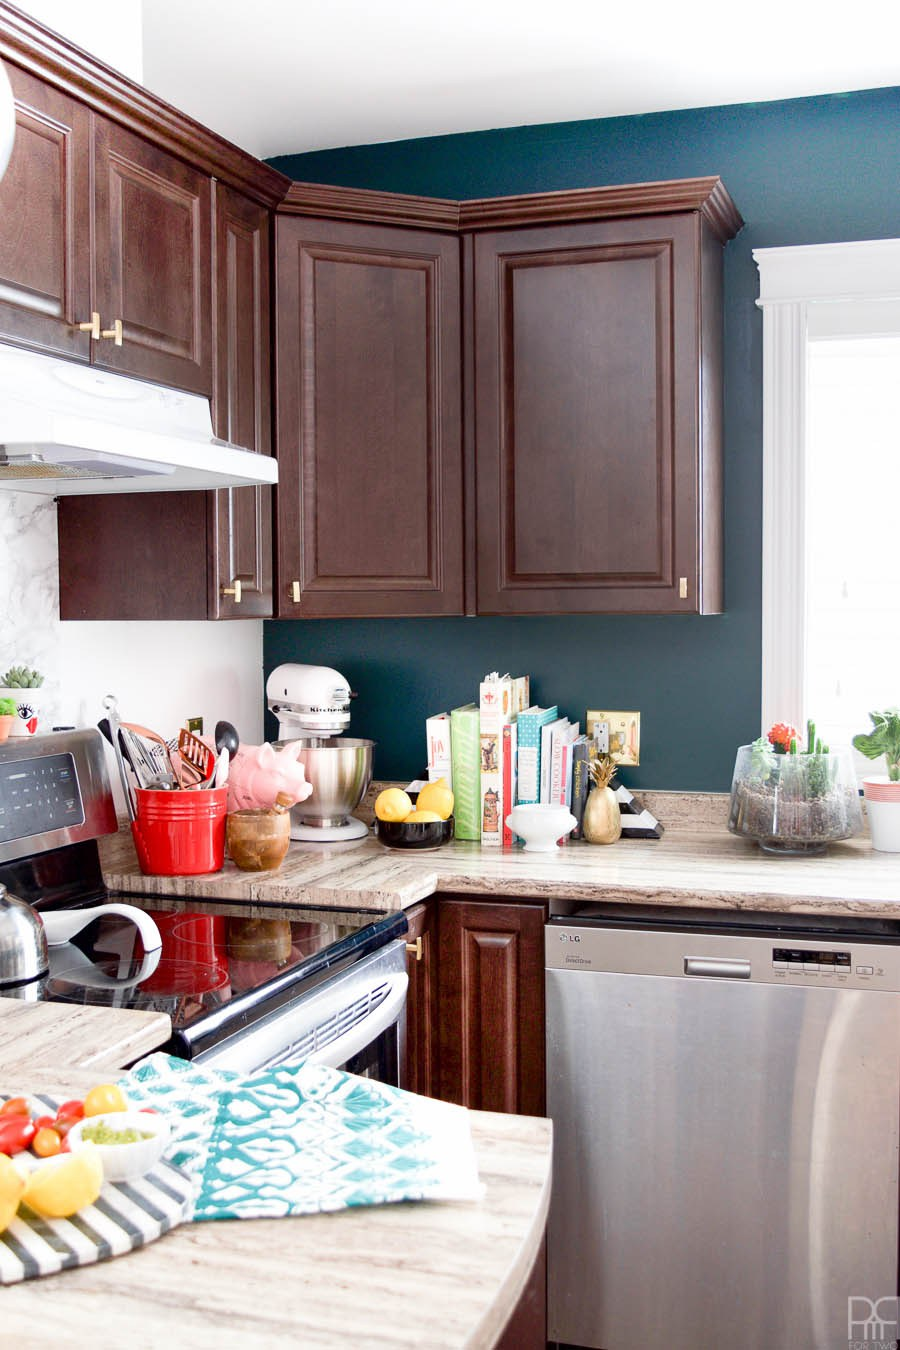 Eclectic Home Tour of PMQ for Two - get tons of renter friendly decorating and DIY ideas like how to add color and accessories to a plain kitchen